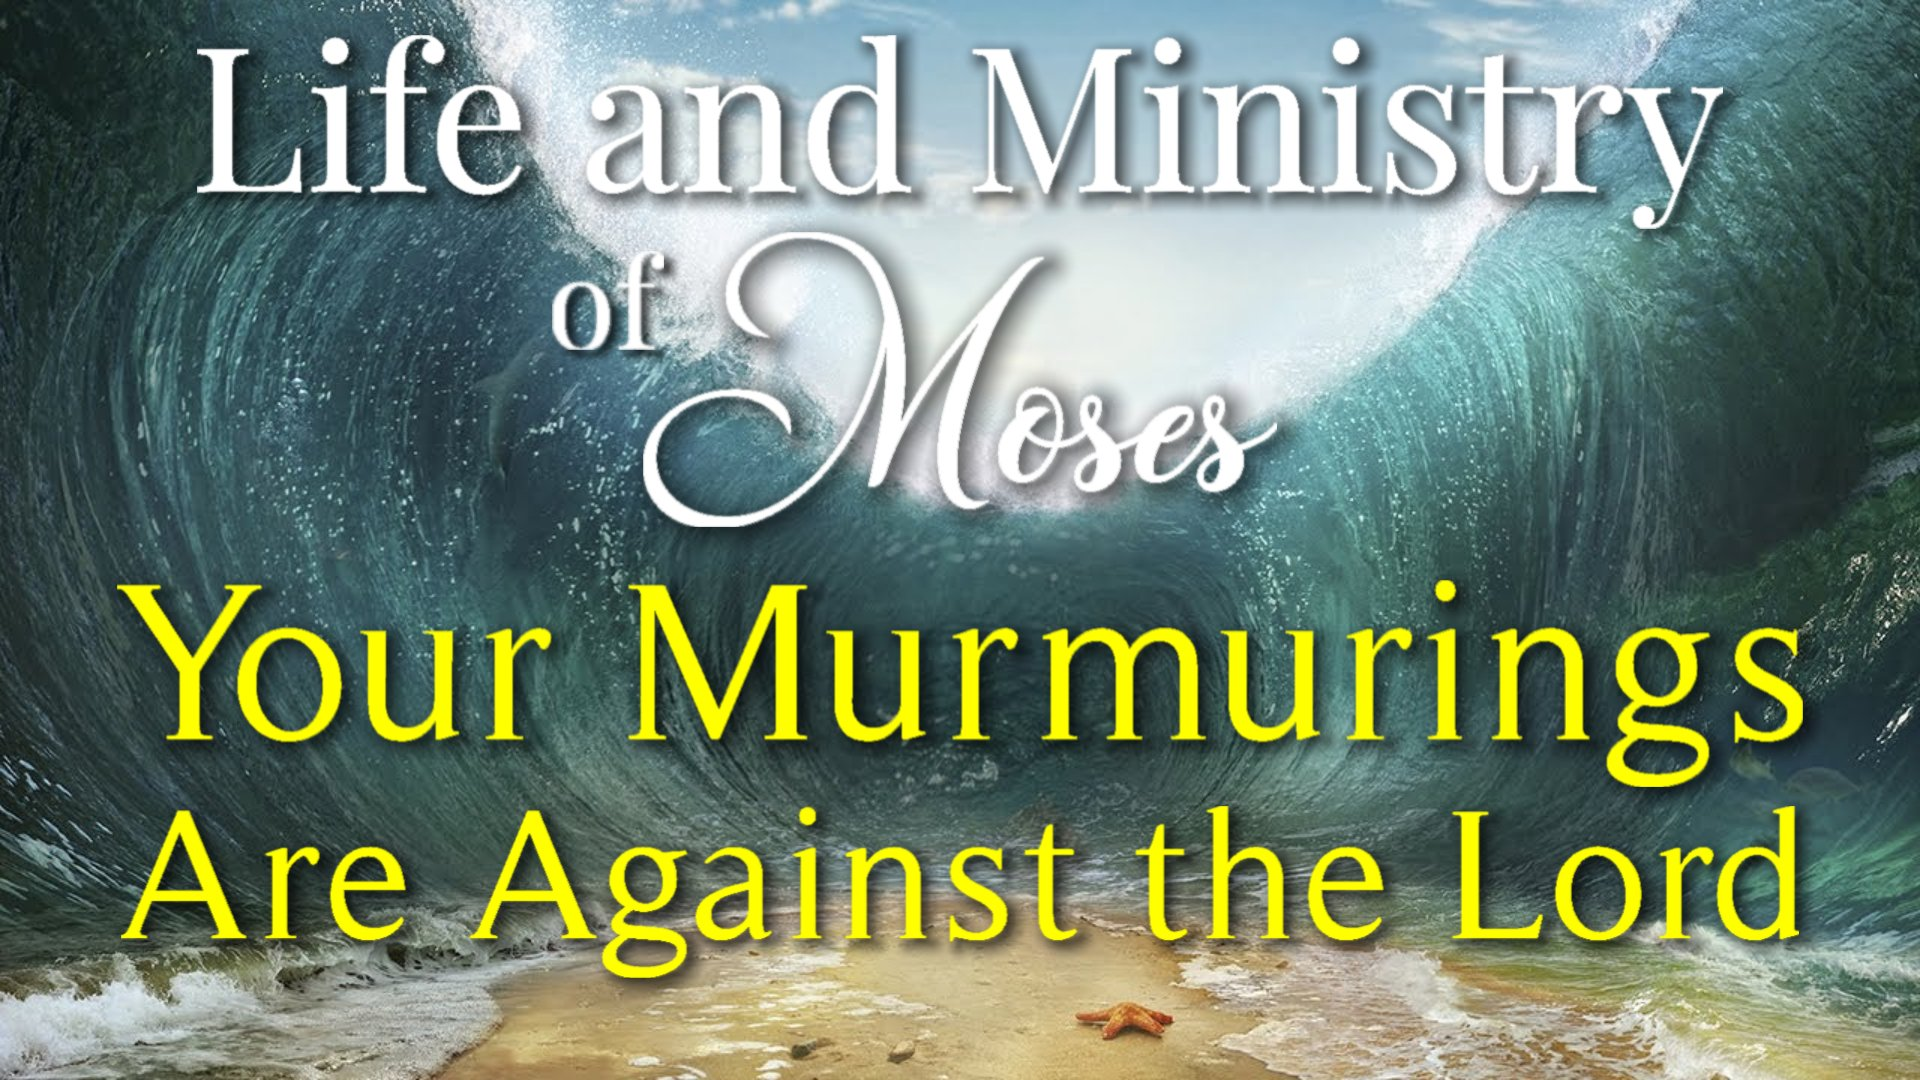 16 Your Murmurings Are Against the Lord